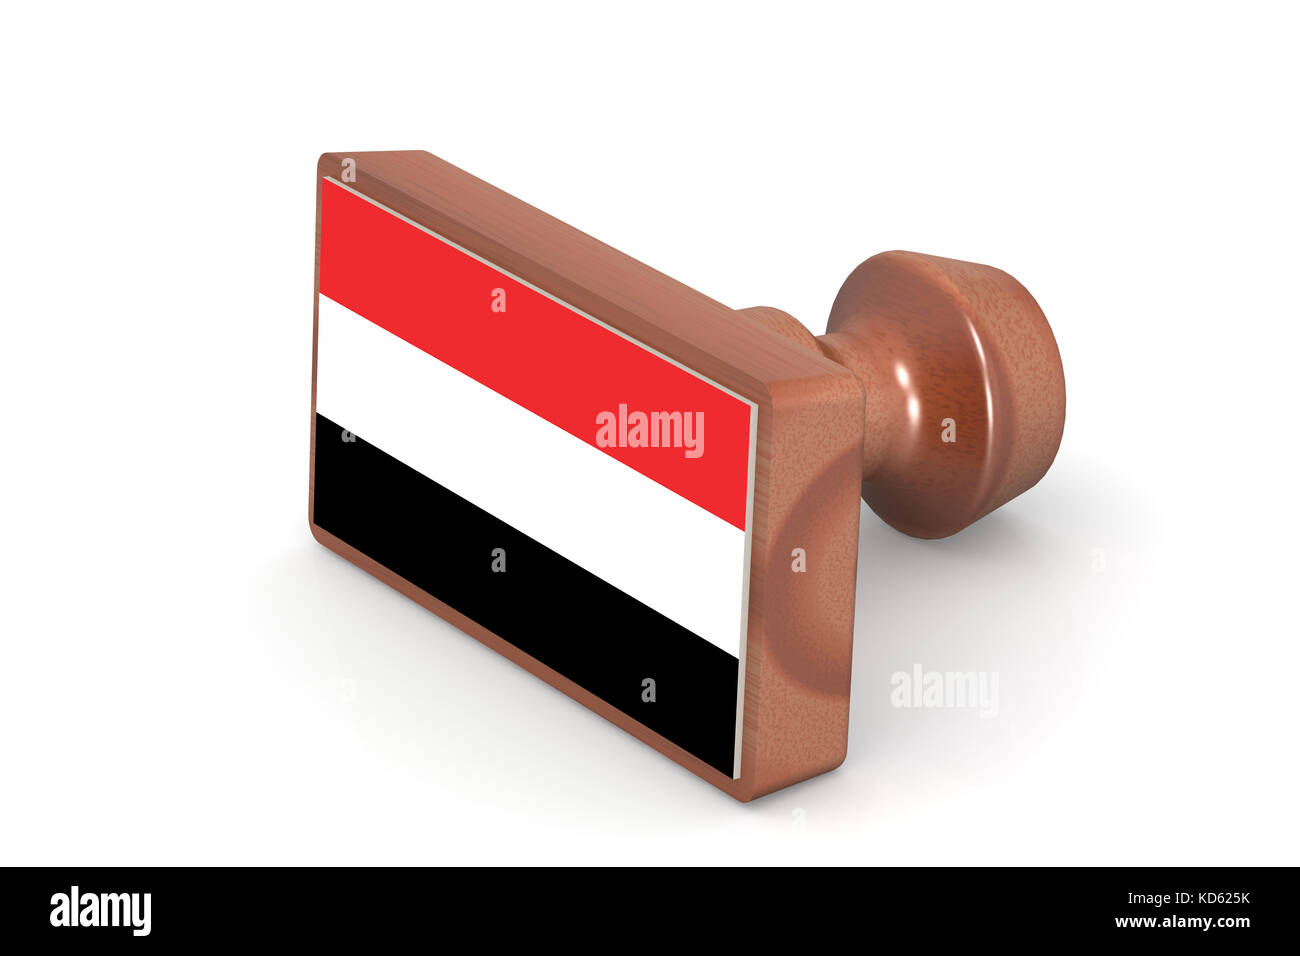 Wooden stamp with Yemen flag image with hi-res rendered artwork that could be used for any graphic design. - Stock Image